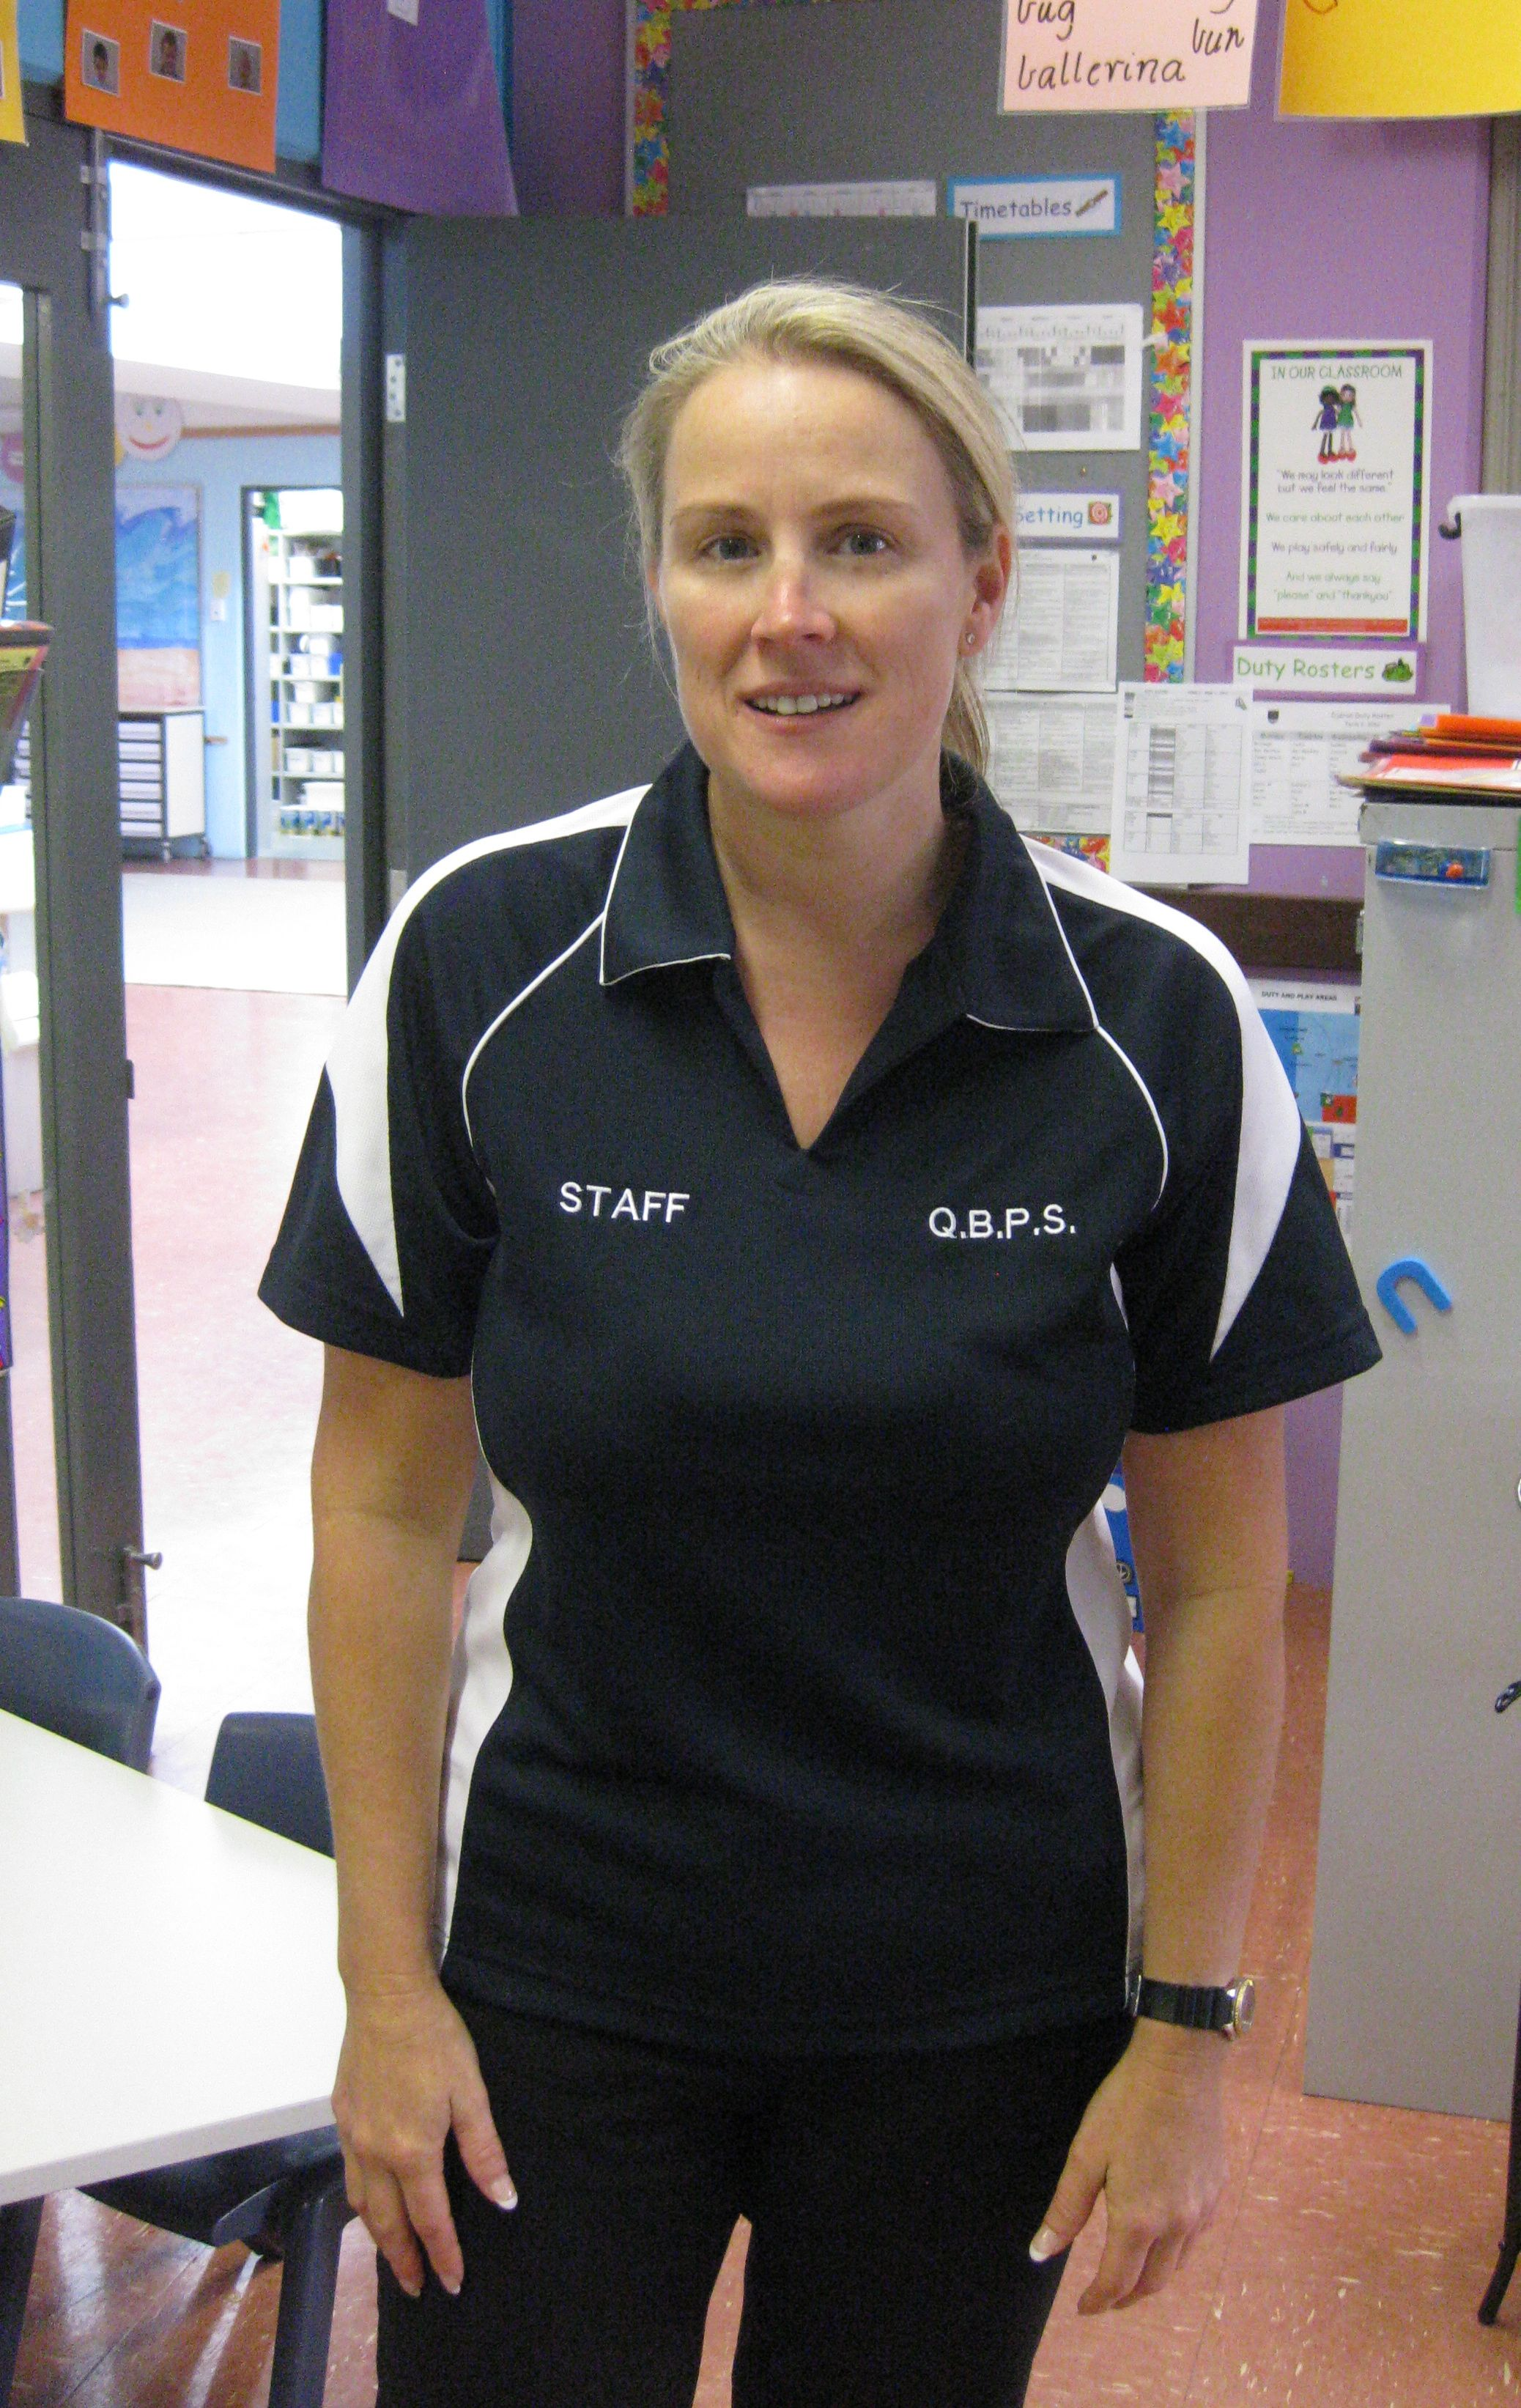 Quinns Beach Primary School - D3 teacher! I wear a staff shirt everyday! It is so easy to decide what to wear every morning.  I like to wear a uniform so I don't get paint, dye or any of that fun messy stuff on my favourite clothes from home!